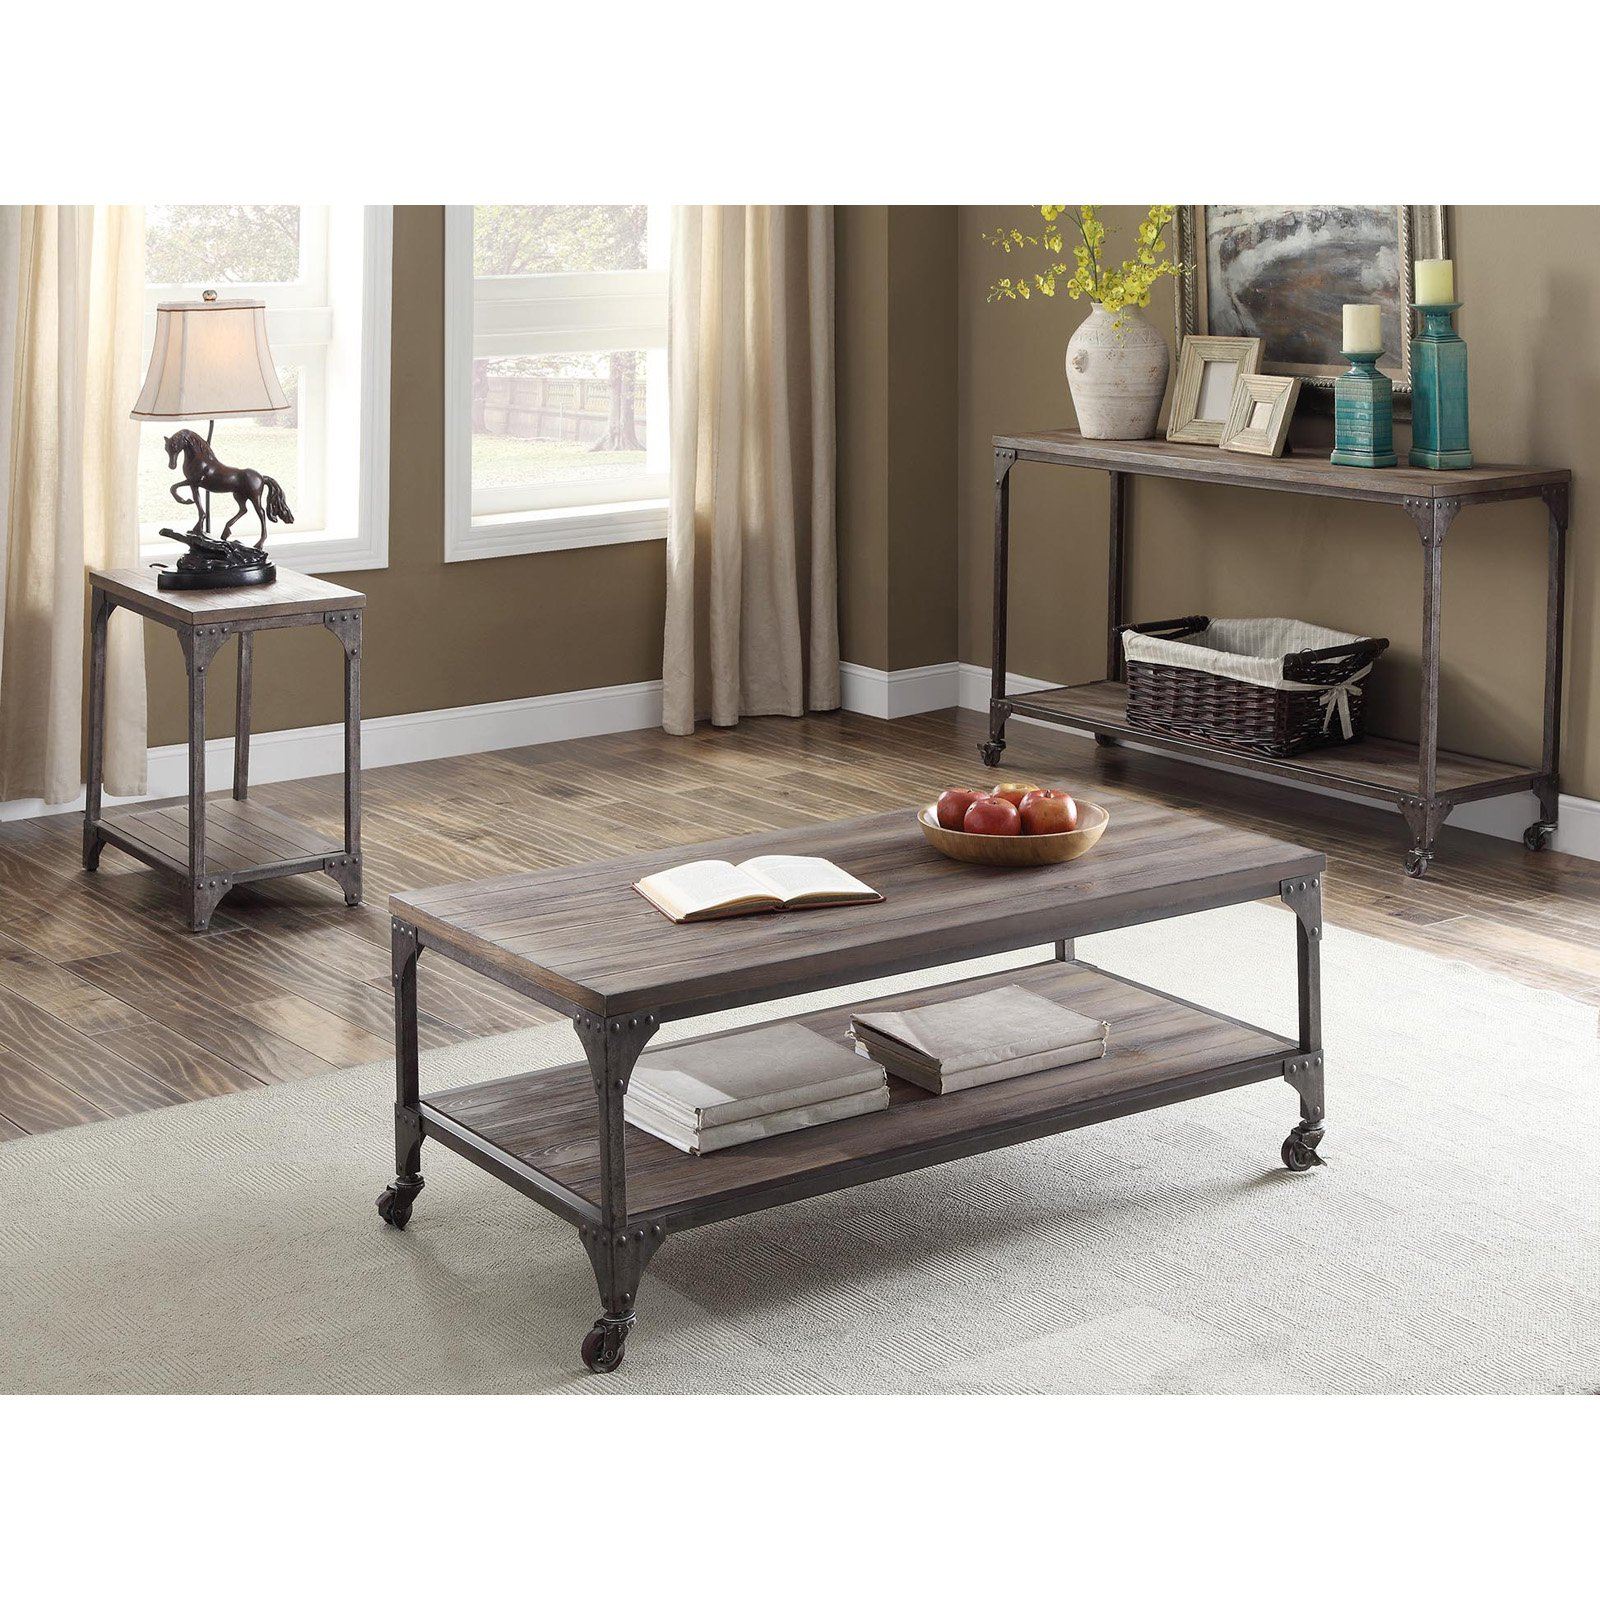 ACME Gorden Coffee Table, Weathered Oak & Antique Silver by Acme Furniture